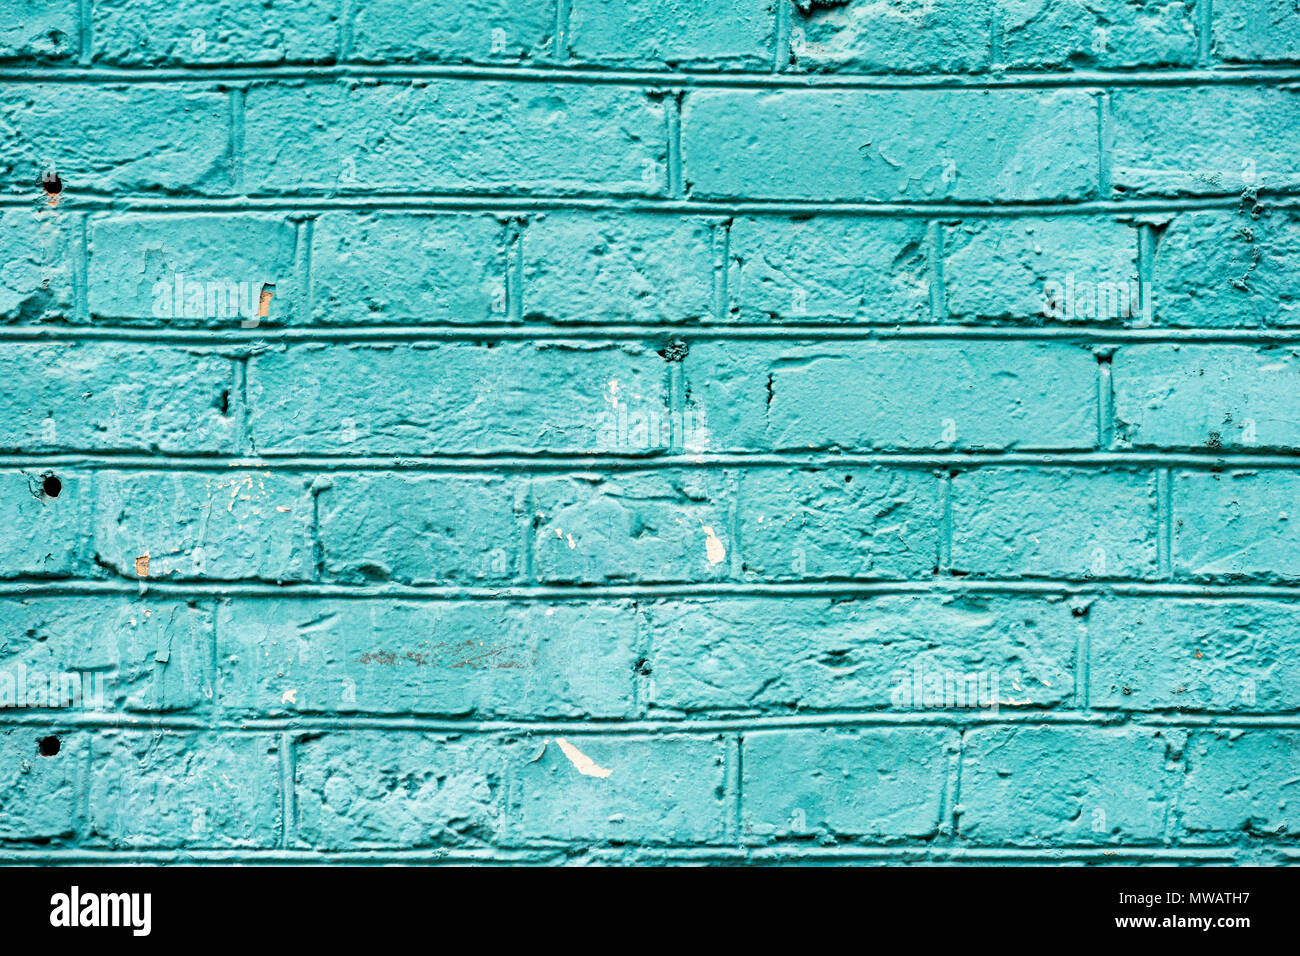 Painted turquoise vintage grunge brick wall texture urban background. Horizontal texture. For abstract background, pattern, wallpaper or banner design Stock Photo